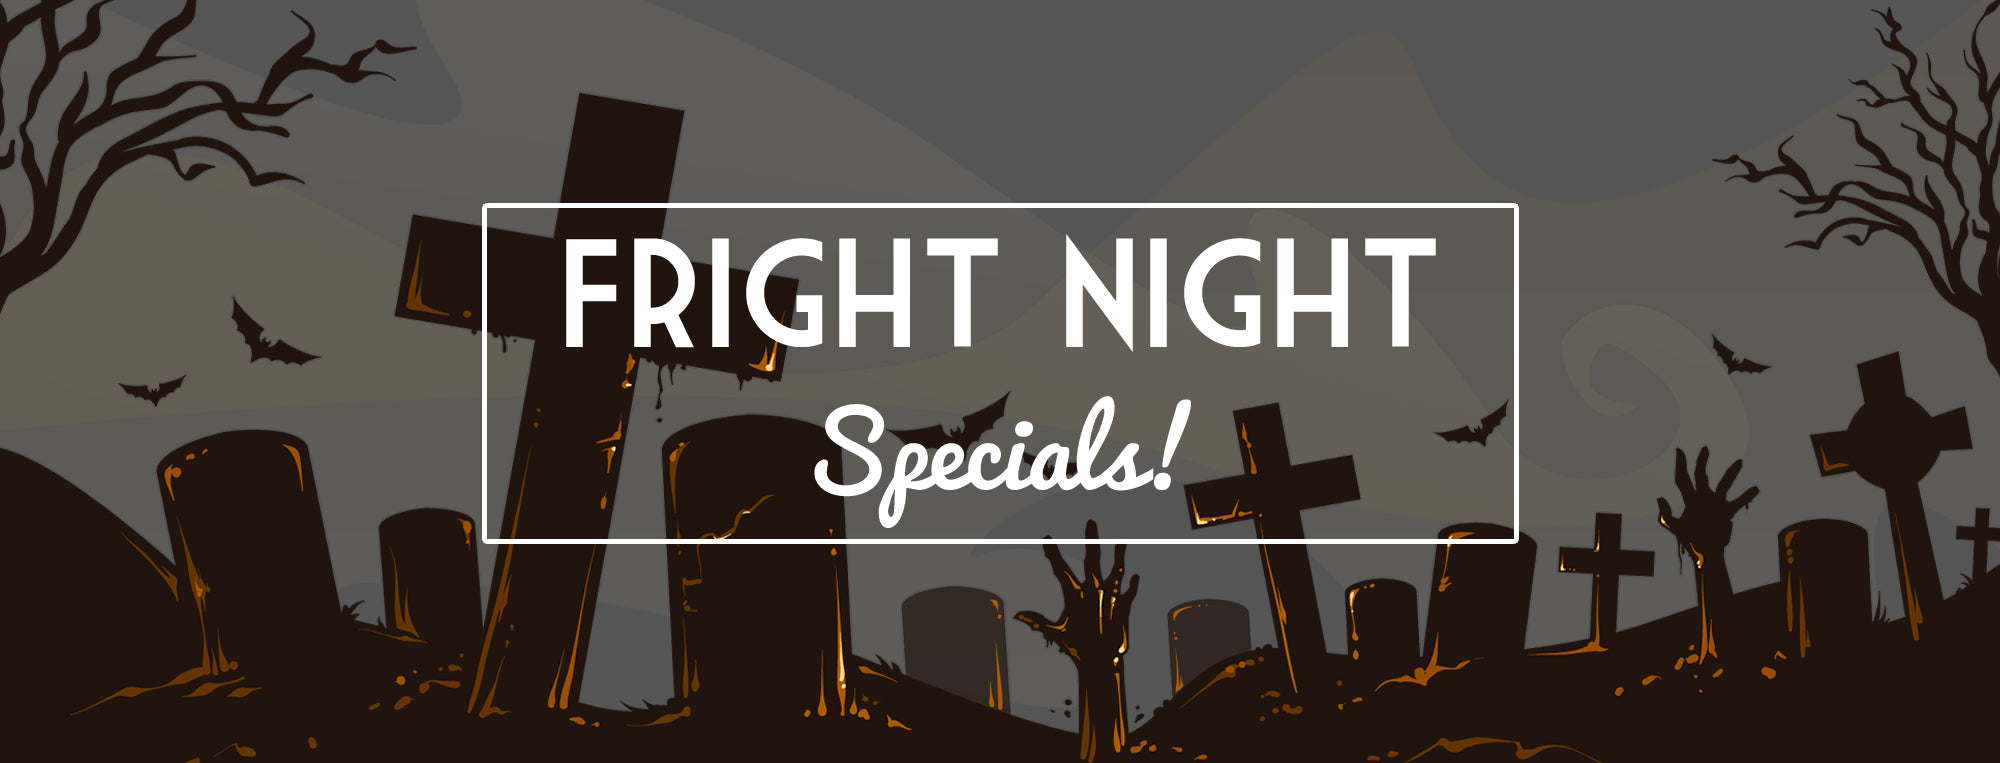 Halloween Specials at The Ridgeway in Newport Fright Night 2018